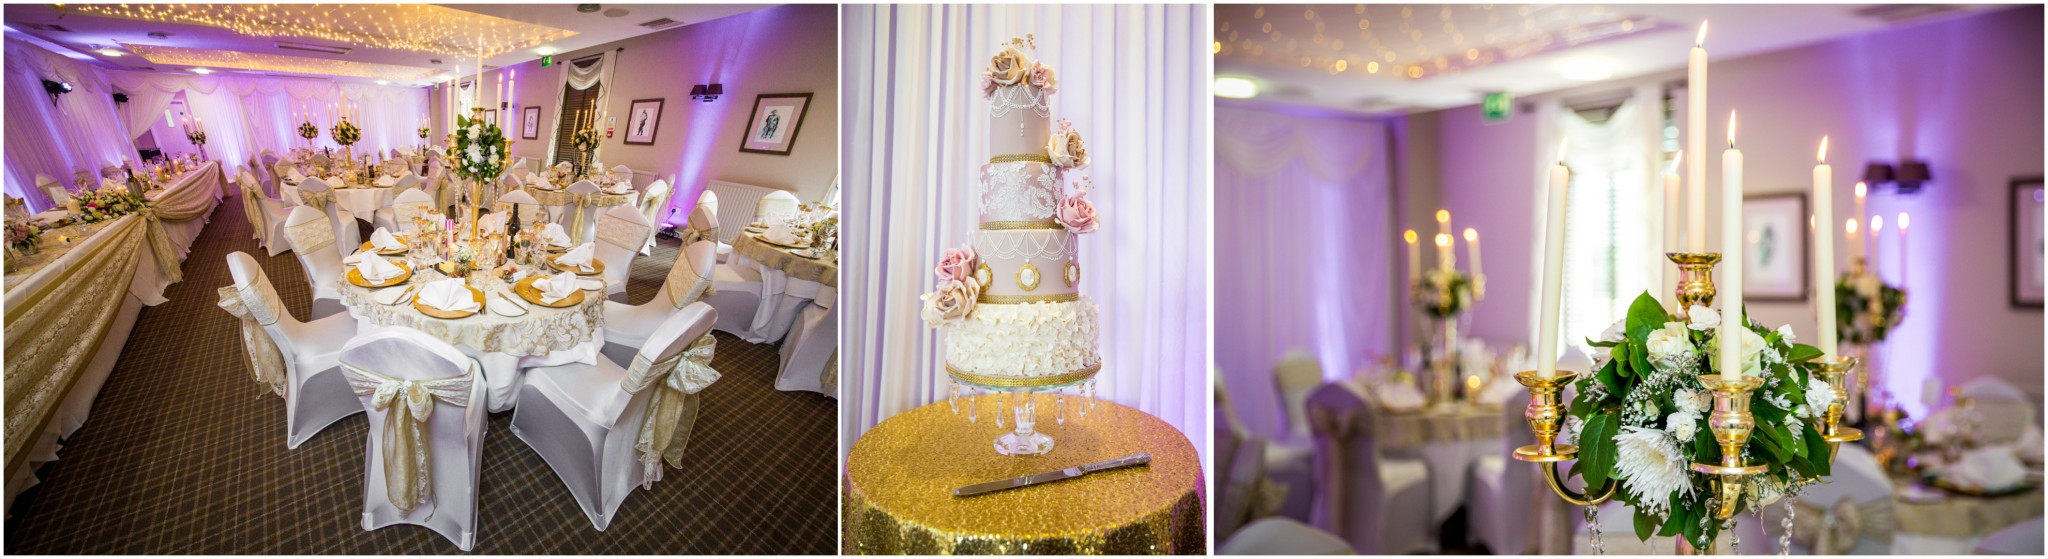 Highfield Park Wedding Photography Cake